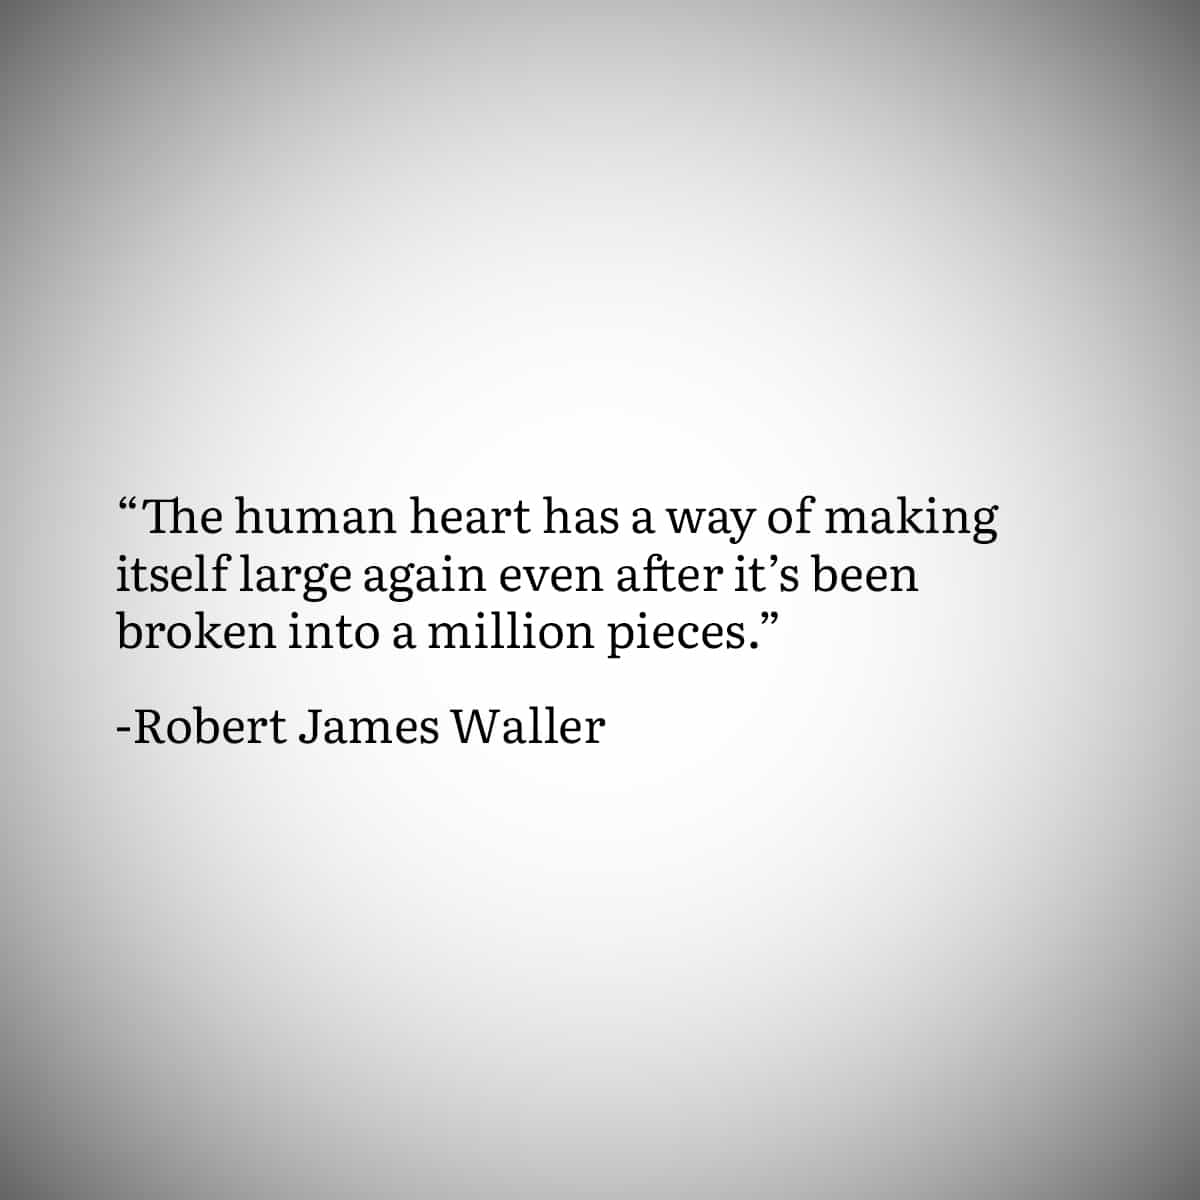 """Broken Heart Quote 8: """"The human heart has a way of making itself large again even after it's been broken into a million pieces."""" by Robert James Waller"""